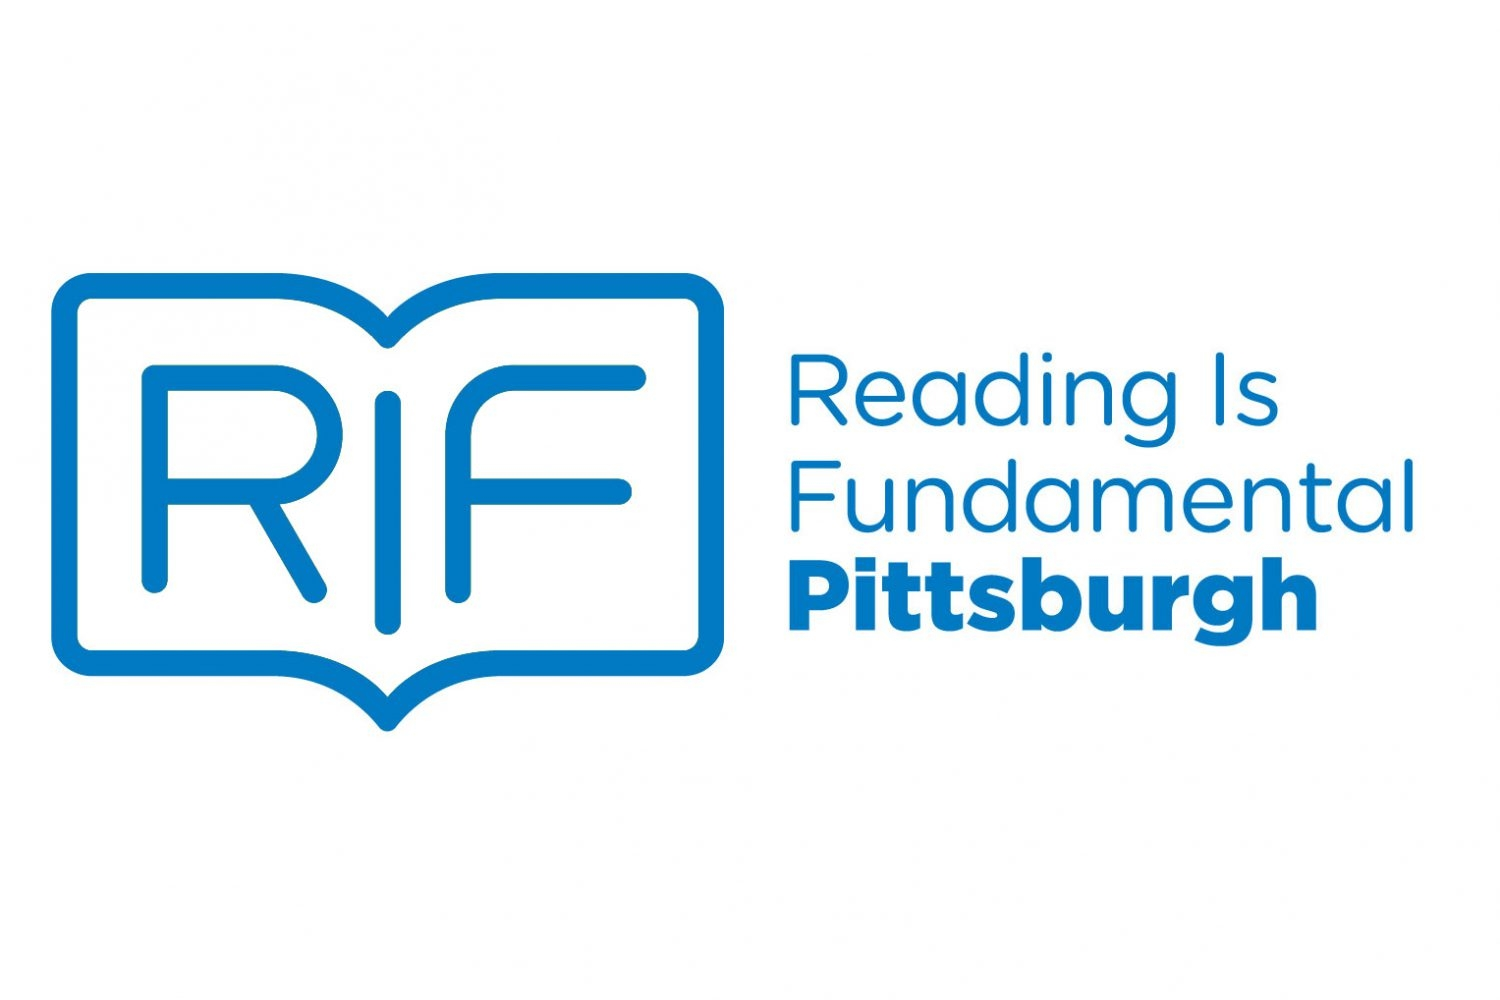 Reading Is Fundamental Remake Learning3abry